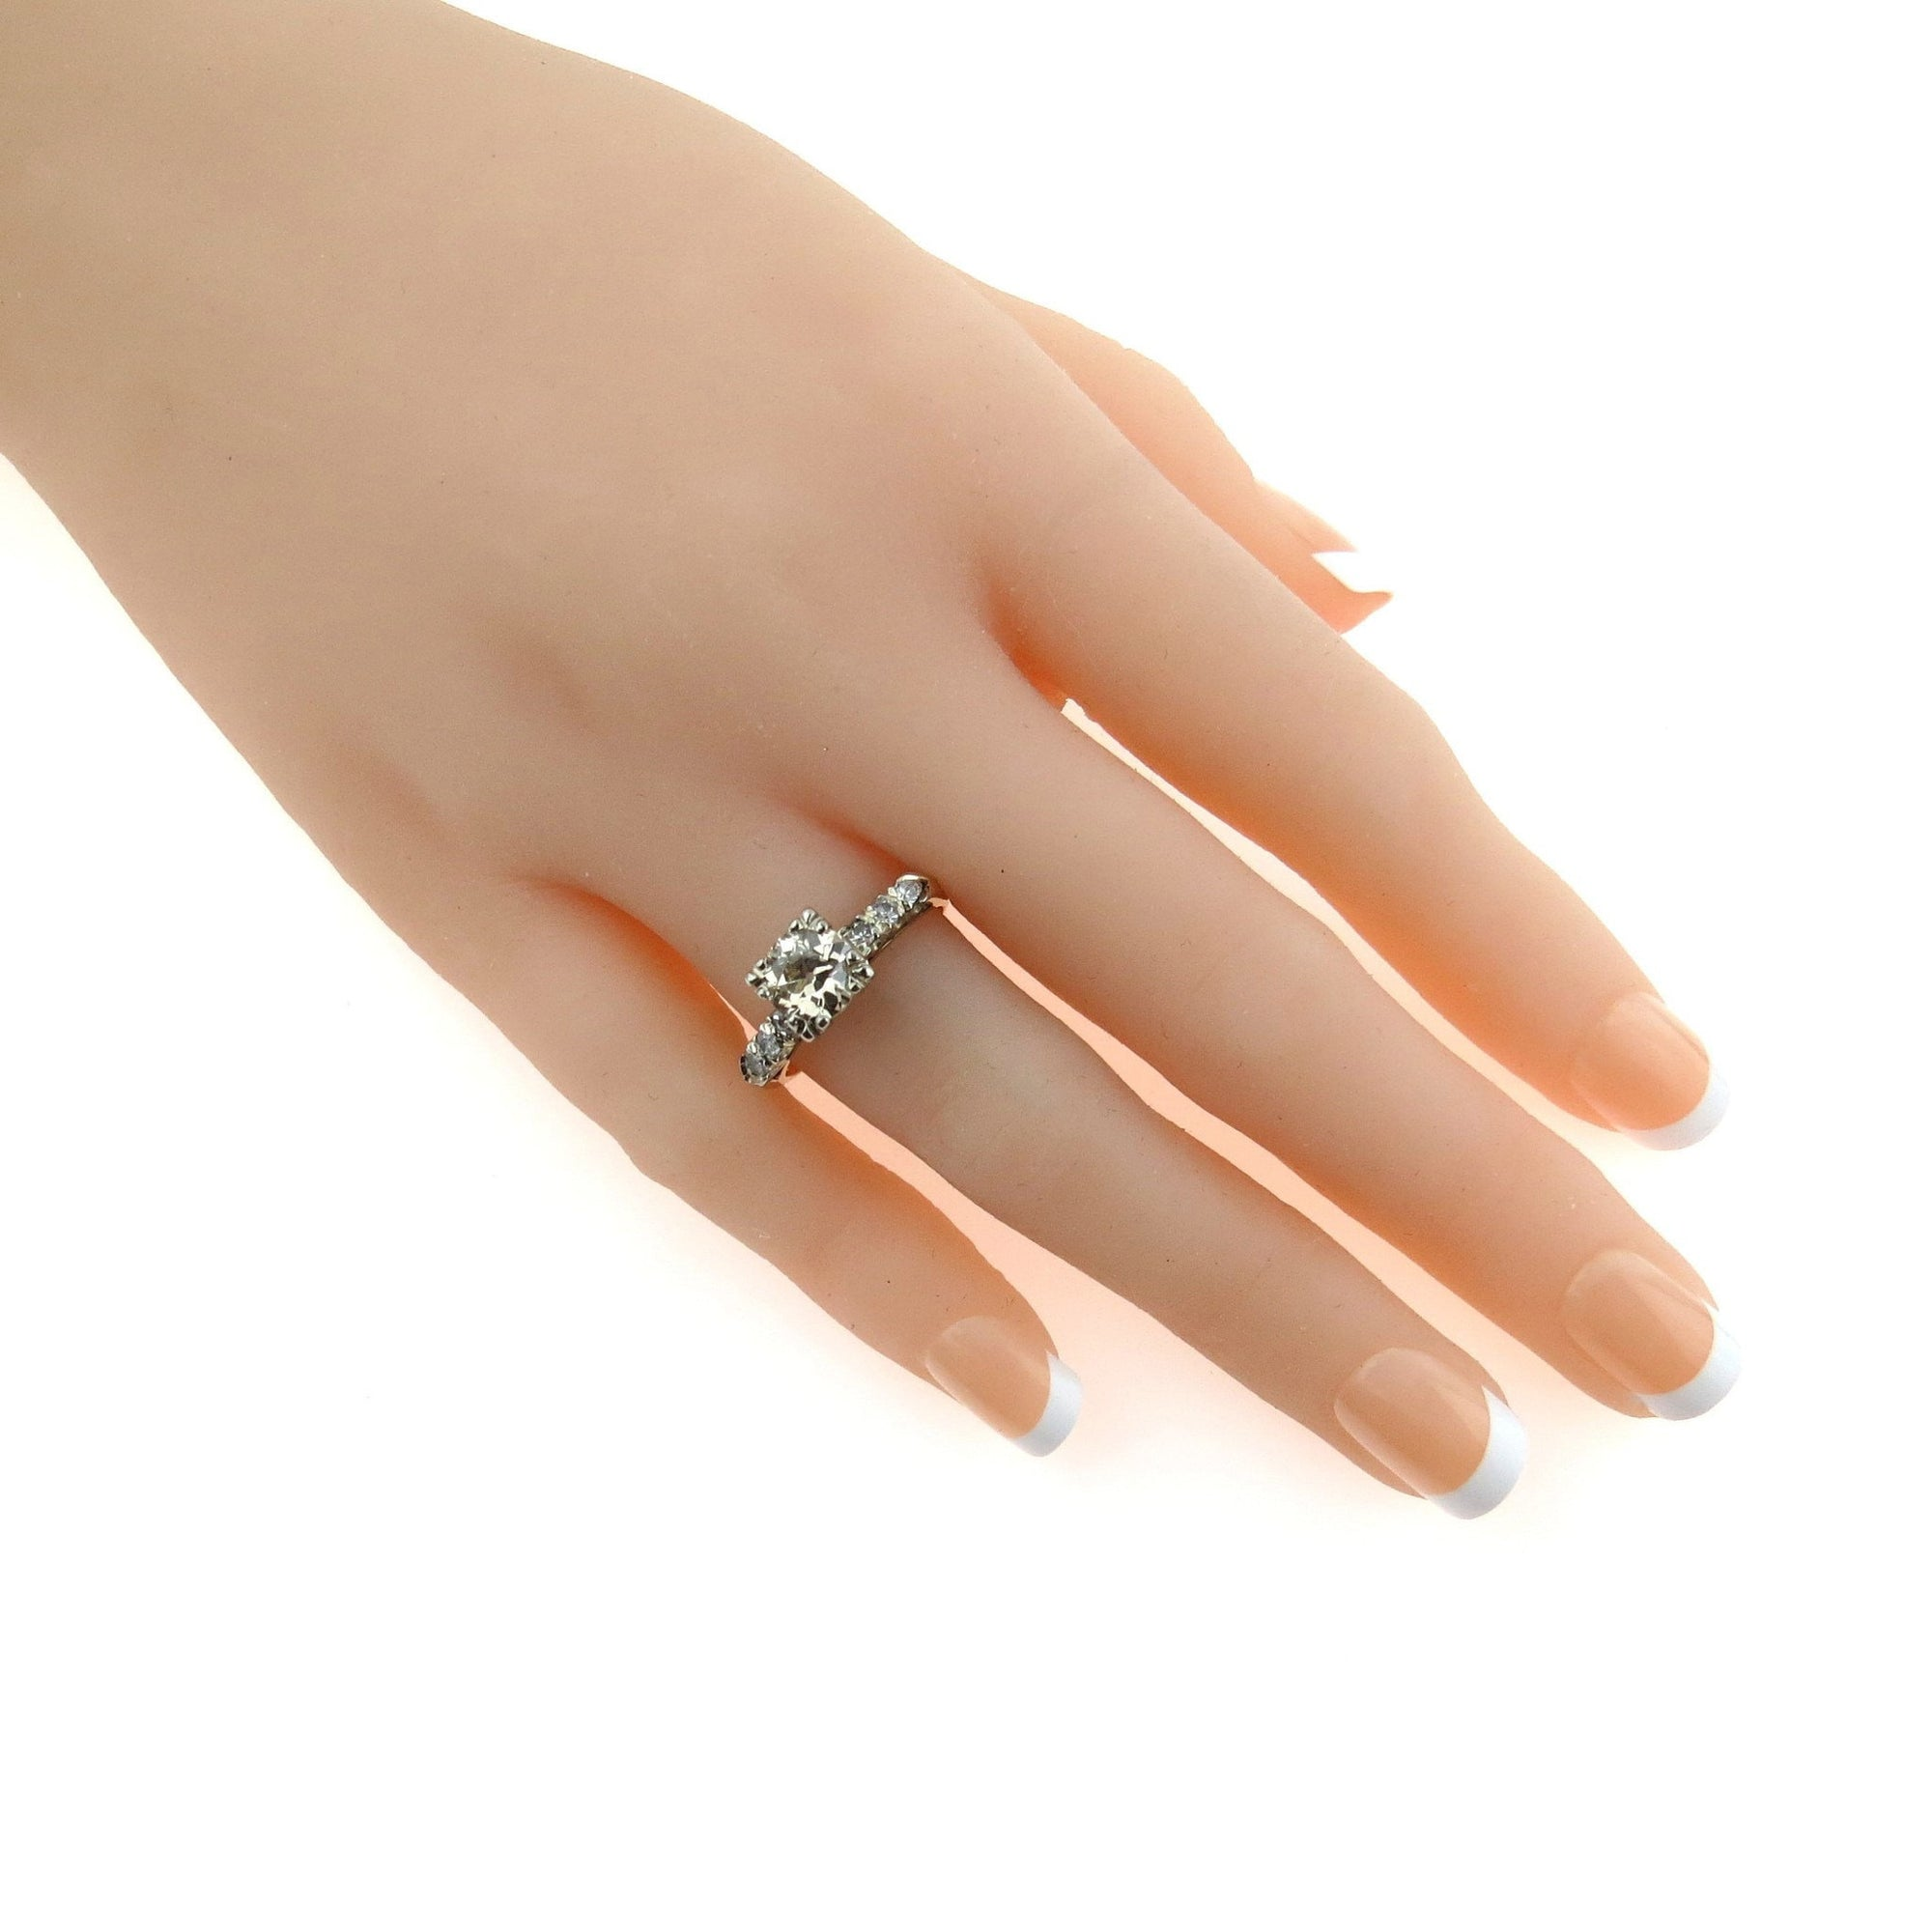 products hazeline solitaire diamond eight wedding sheffield anna of ring gallery pieces rings champagne